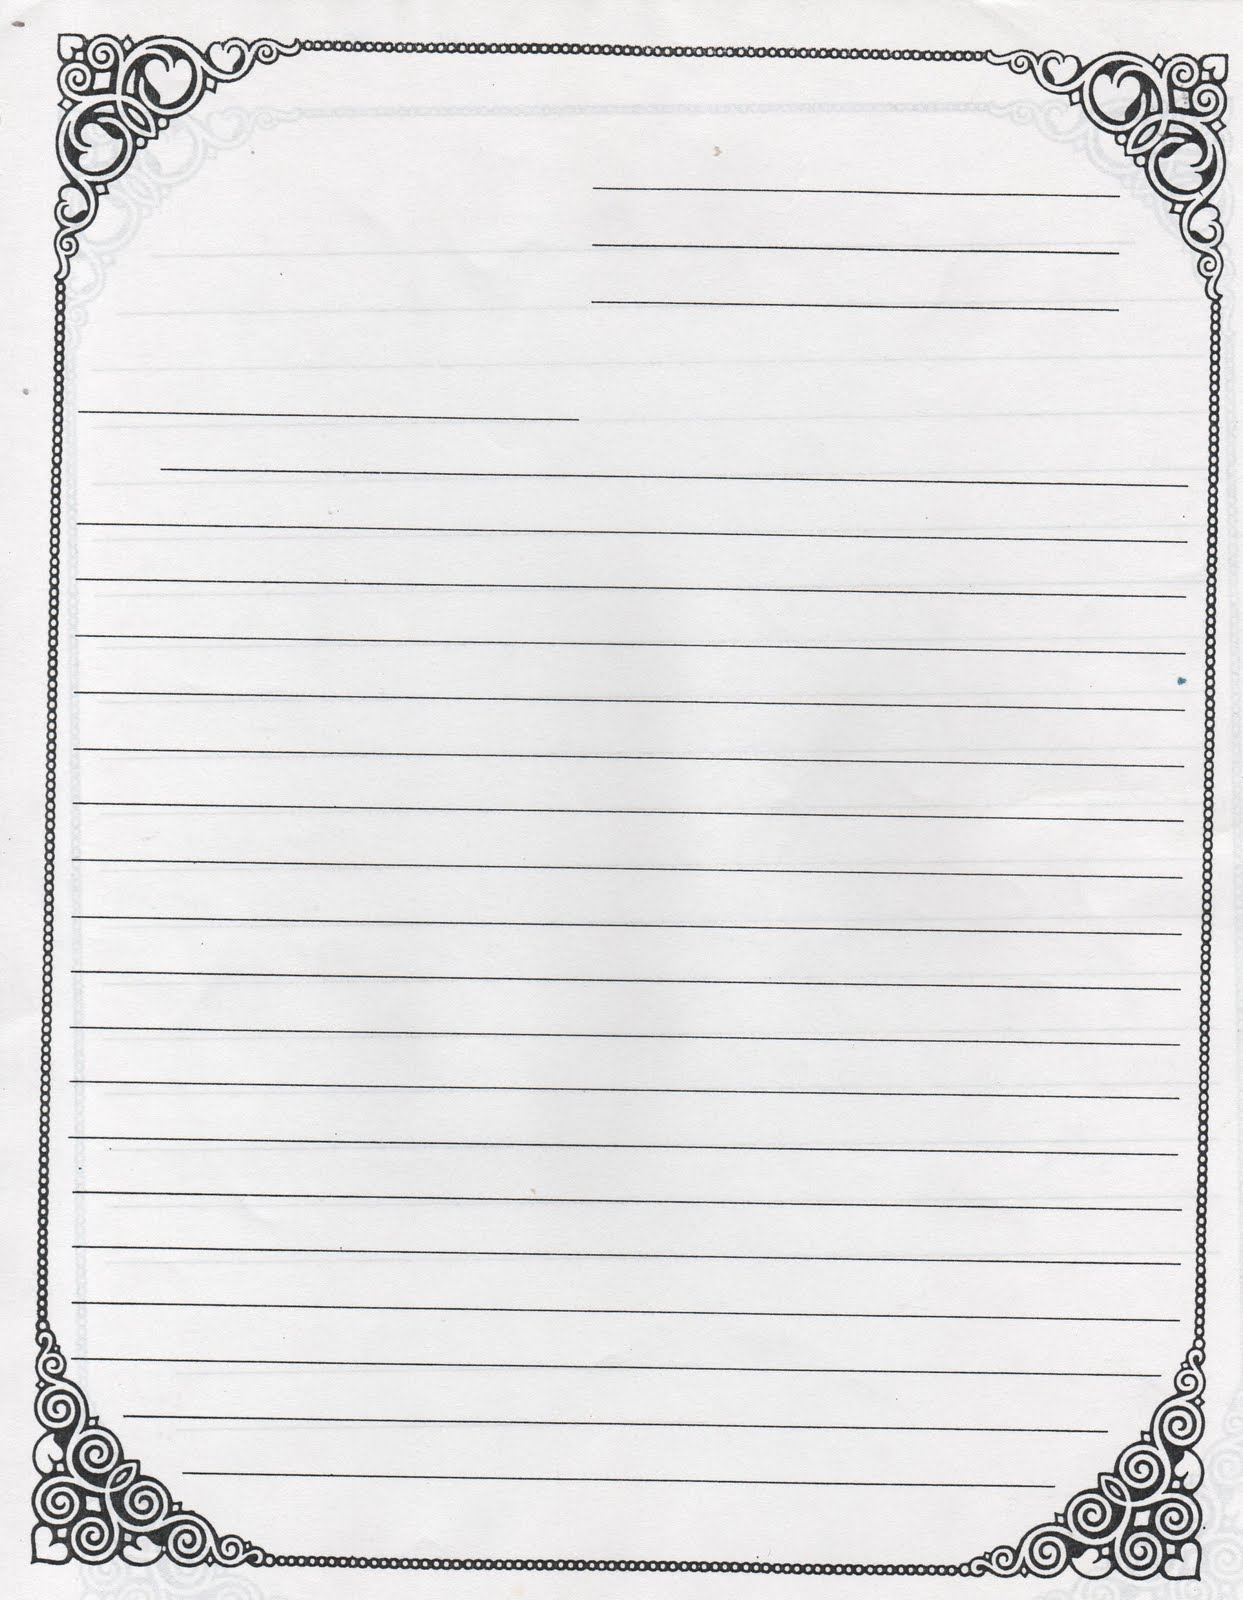 Letter Template With Lines Letter Writing Paper Formal Letter - Free Printable Letter Writing Templates